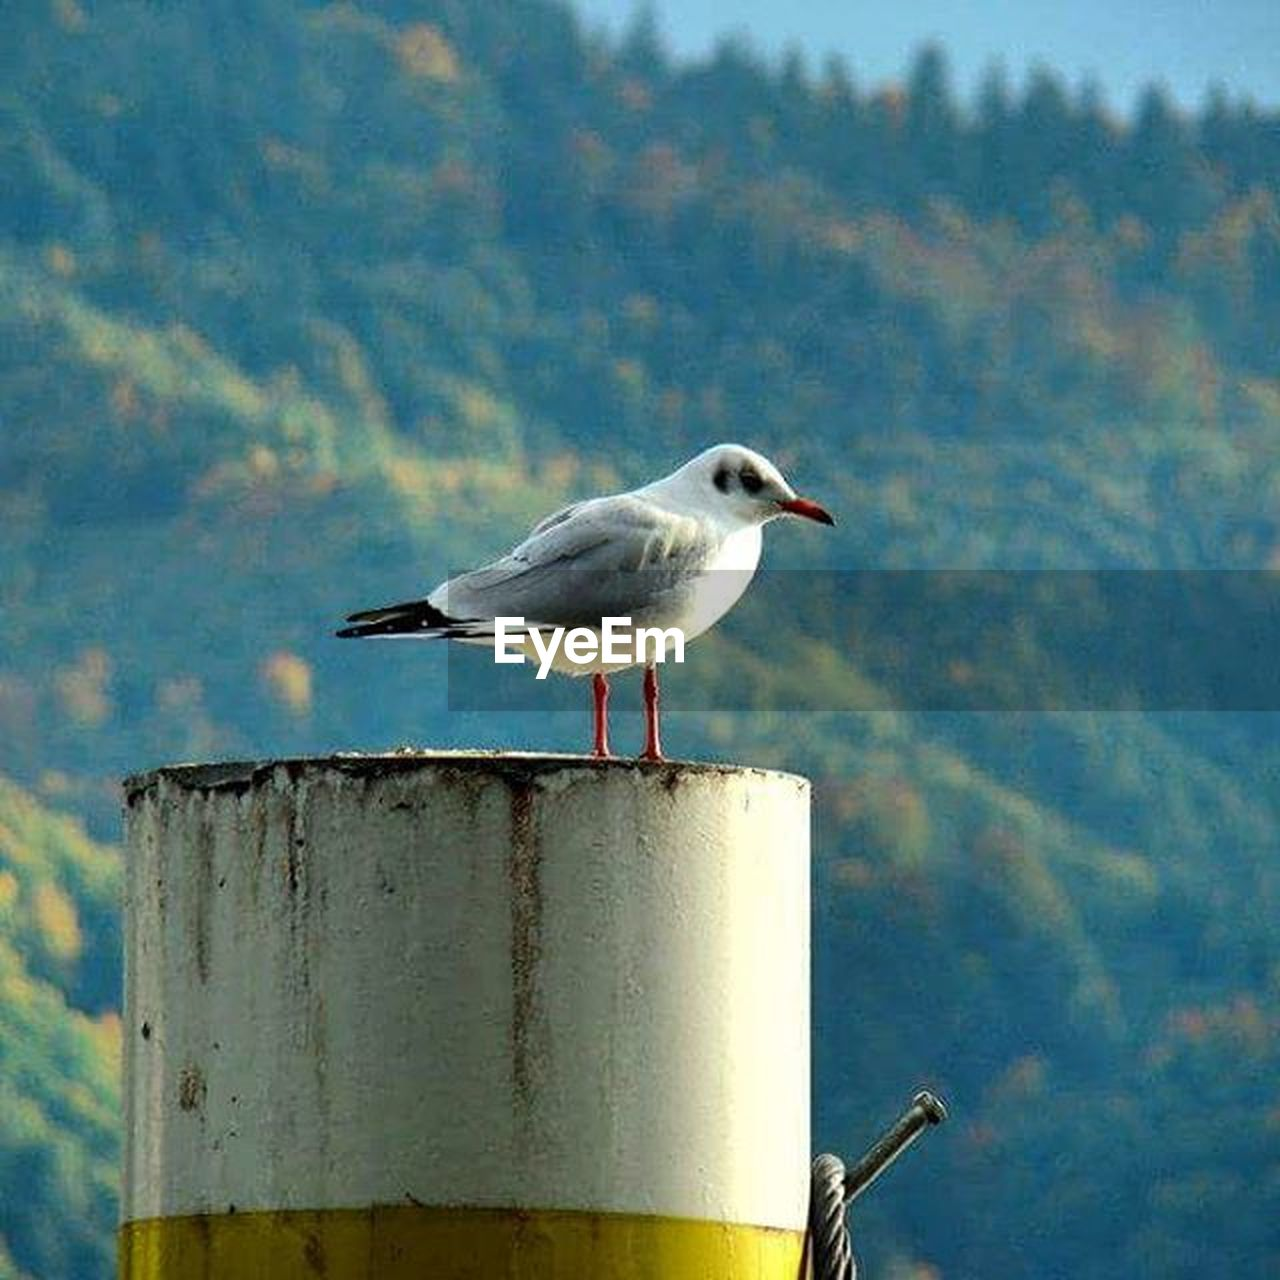 bird, animals in the wild, animal wildlife, perching, one animal, nature, seagull, day, outdoors, no people, animal themes, close-up, water, food